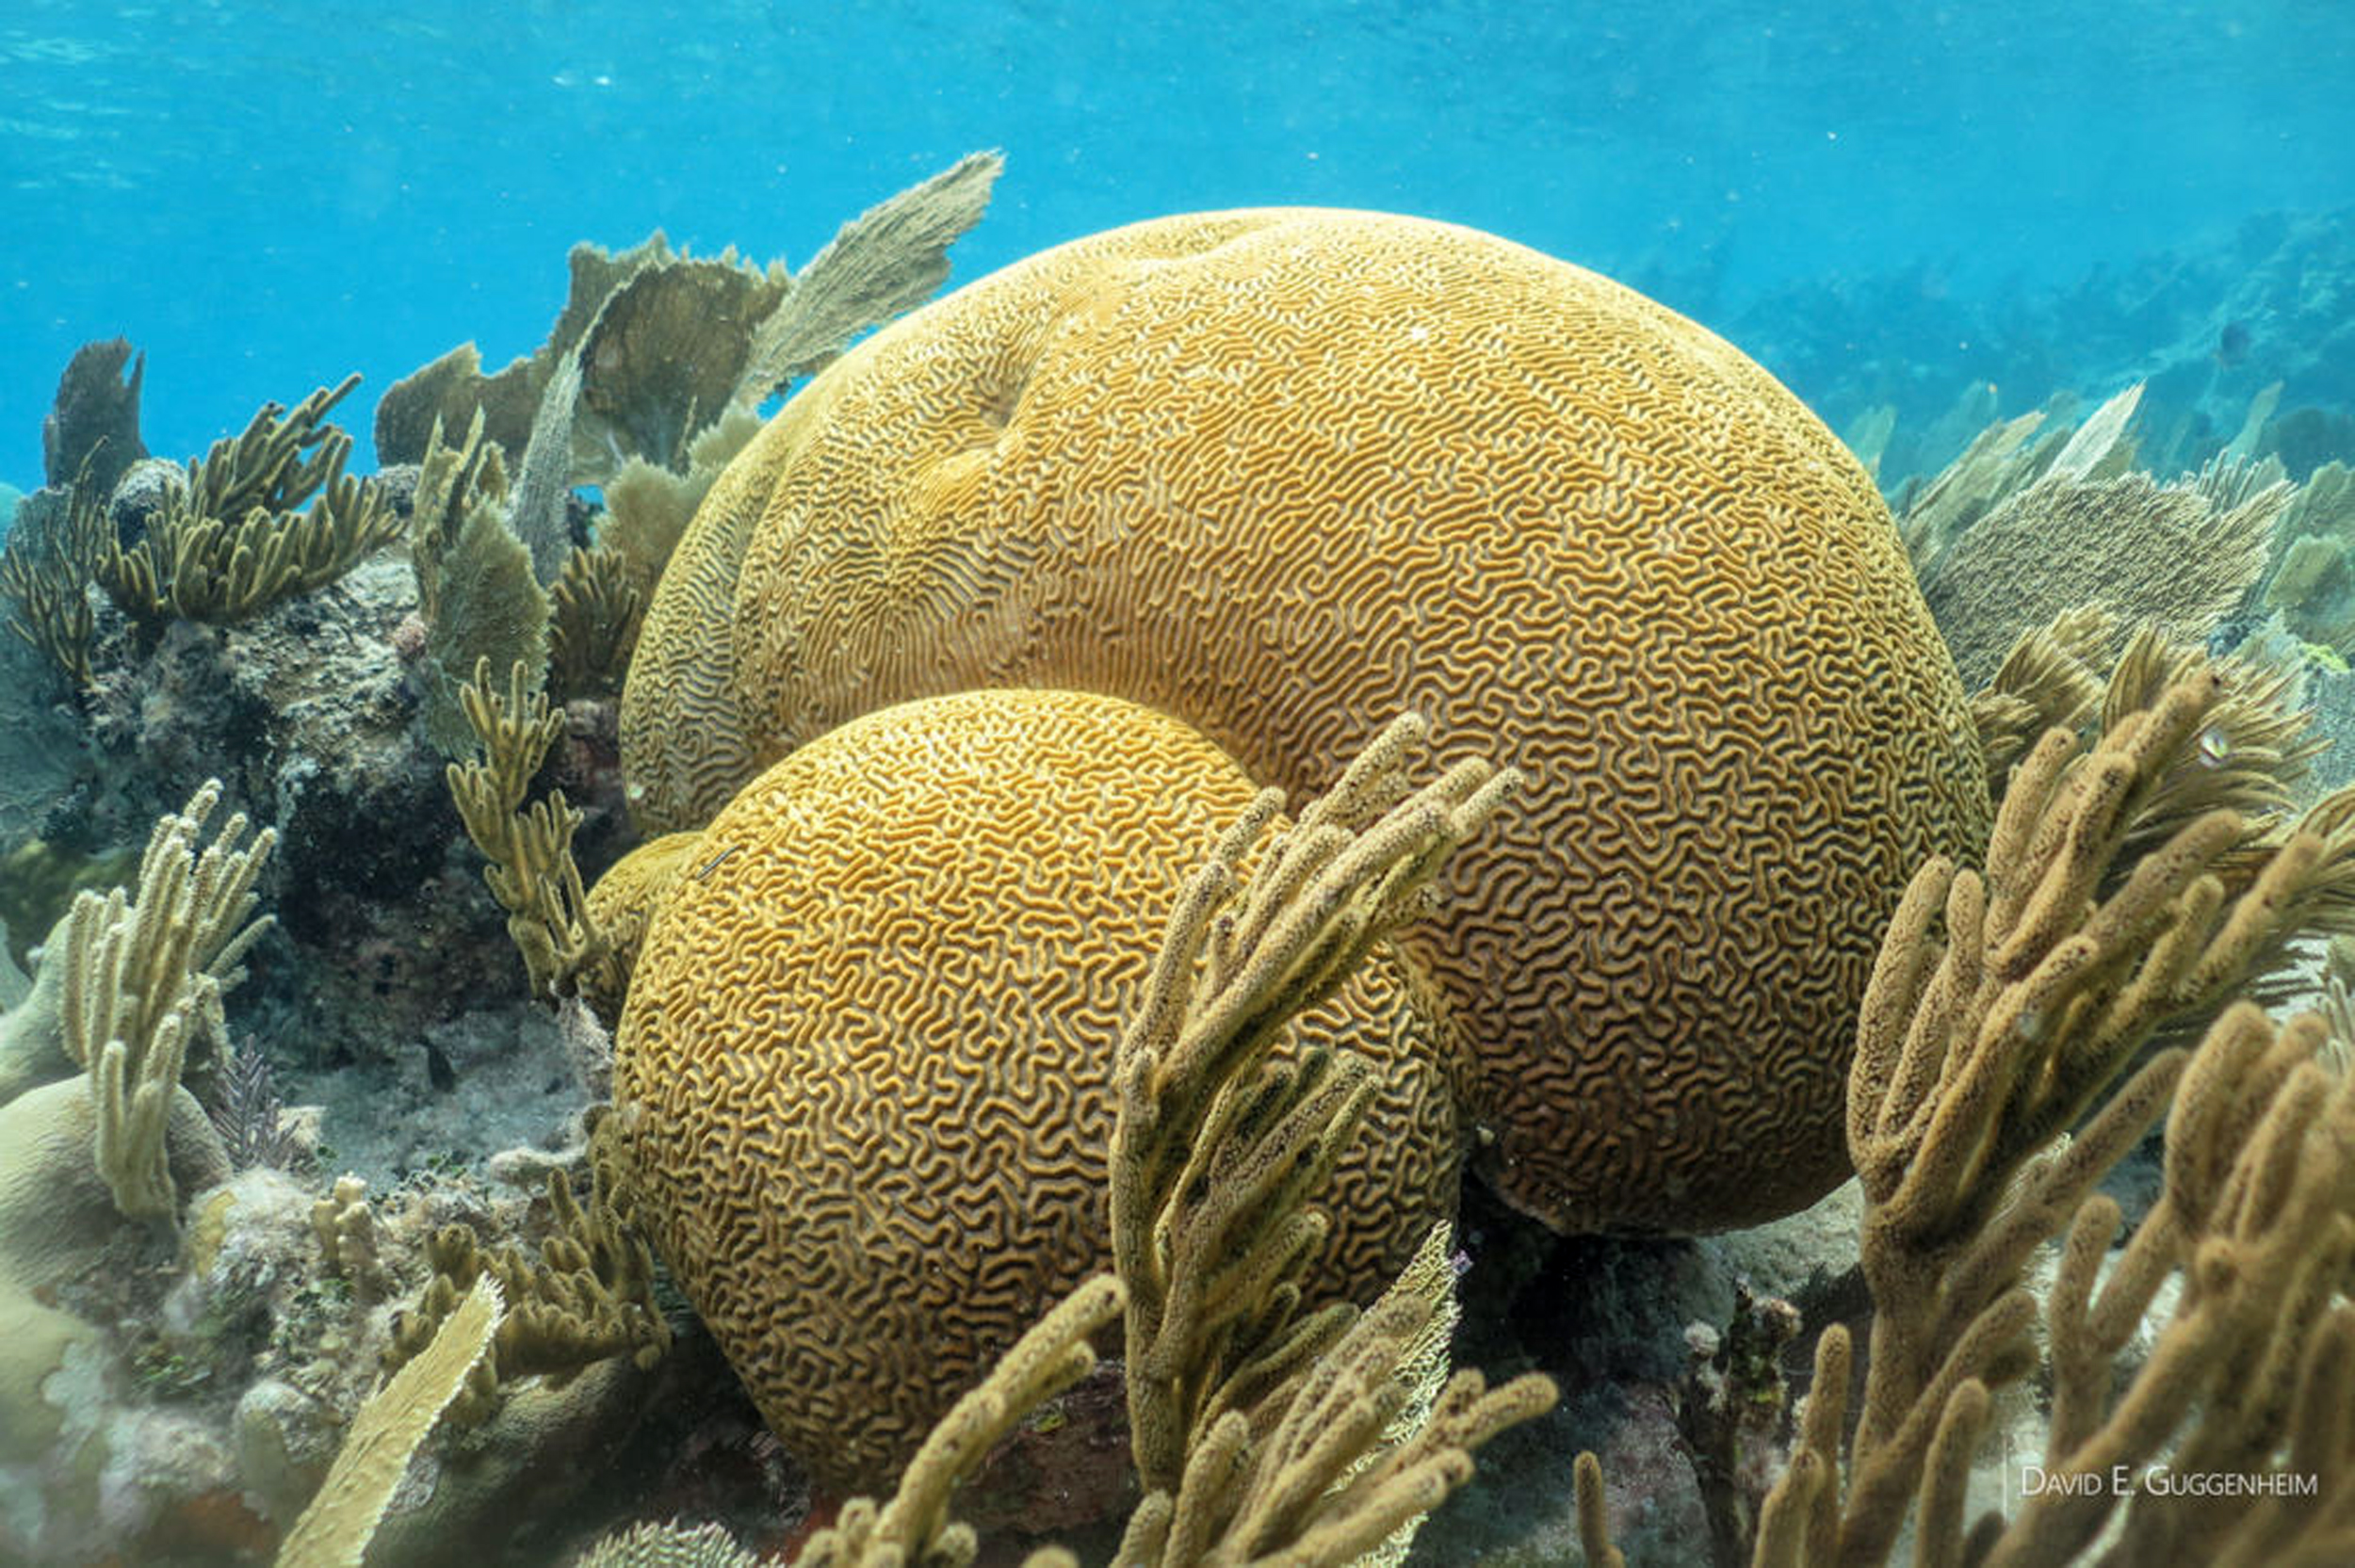 A healthy stand of brain coral and soft corals off Cuba's southern coast. Photo credit: David E. Guggenheim ©